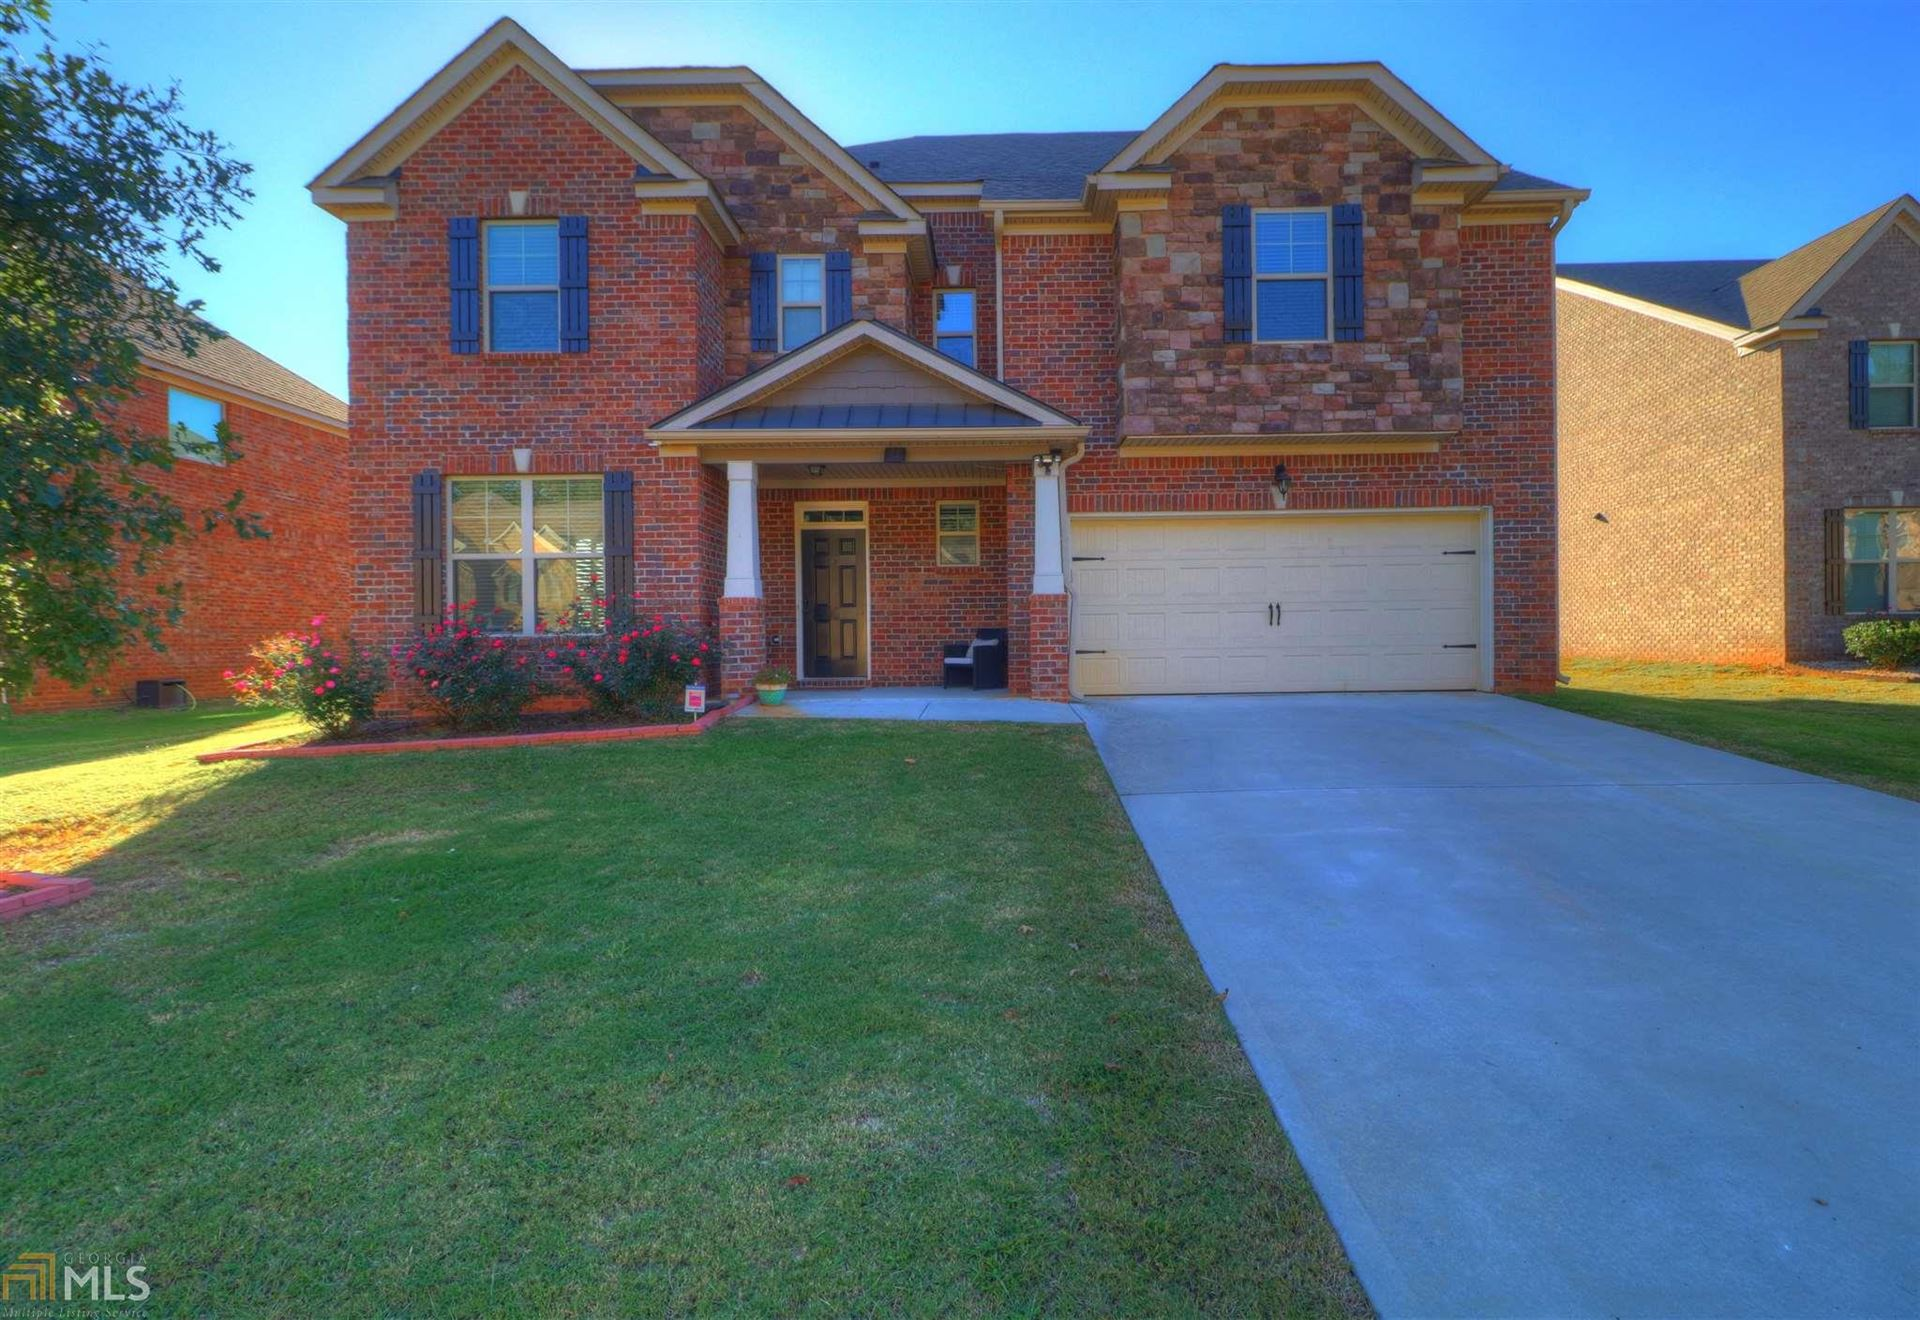 3252 Alhambra Cir, Hampton, GA 30228 - MLS#: 8876656